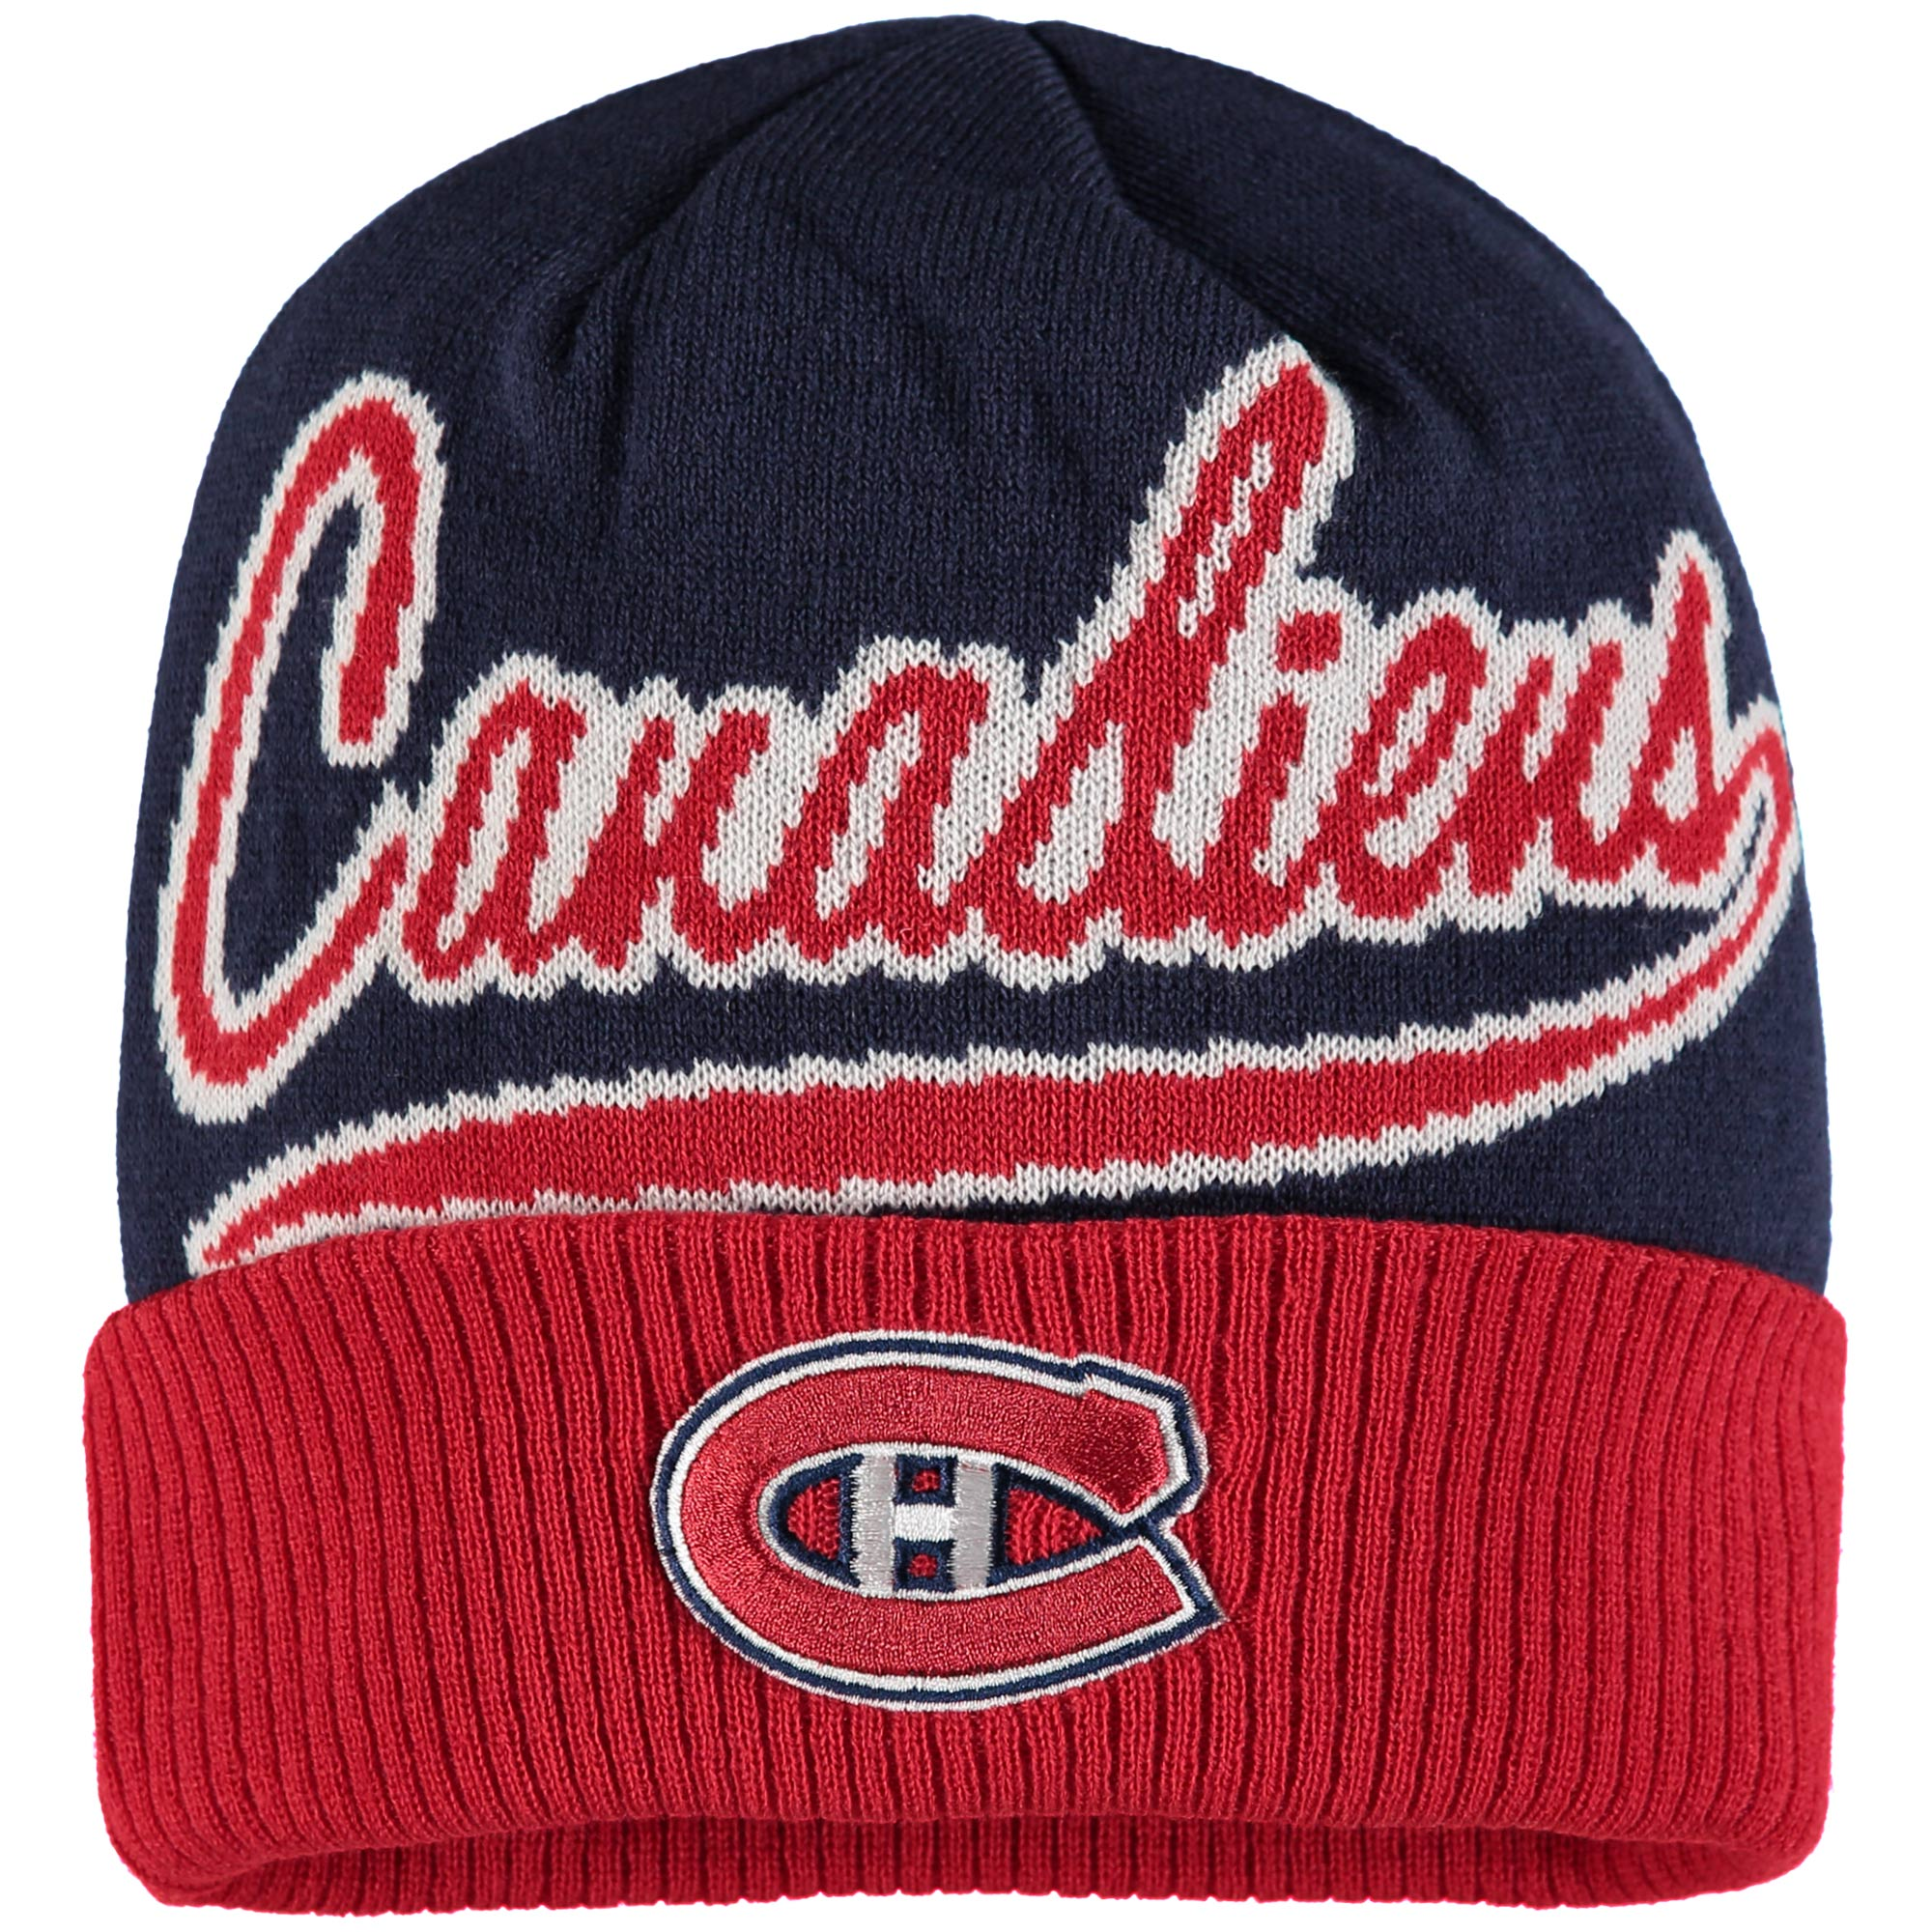 Montreal Canadiens Reebok Face-Off Jacquard Cuffed Knit Hat - Navy/Red - OSFA